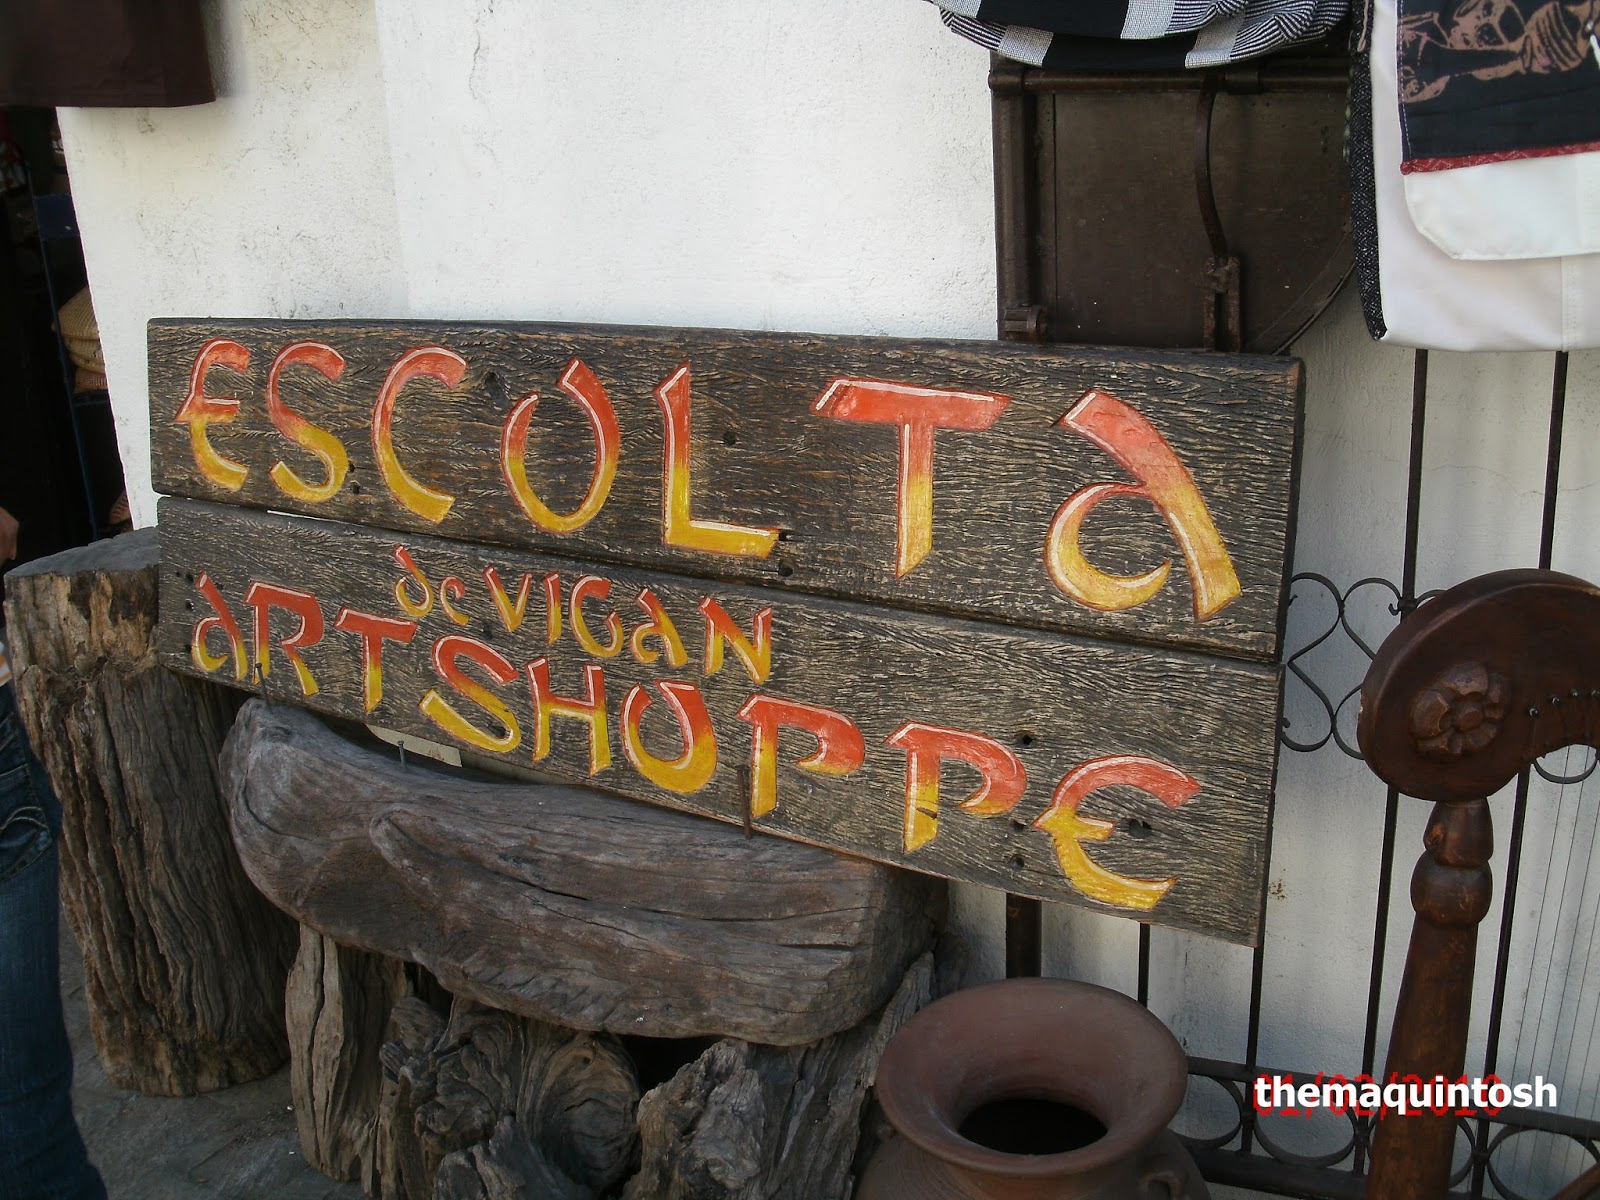 Signage of one of the souvenir shops along Calle Crisologo.